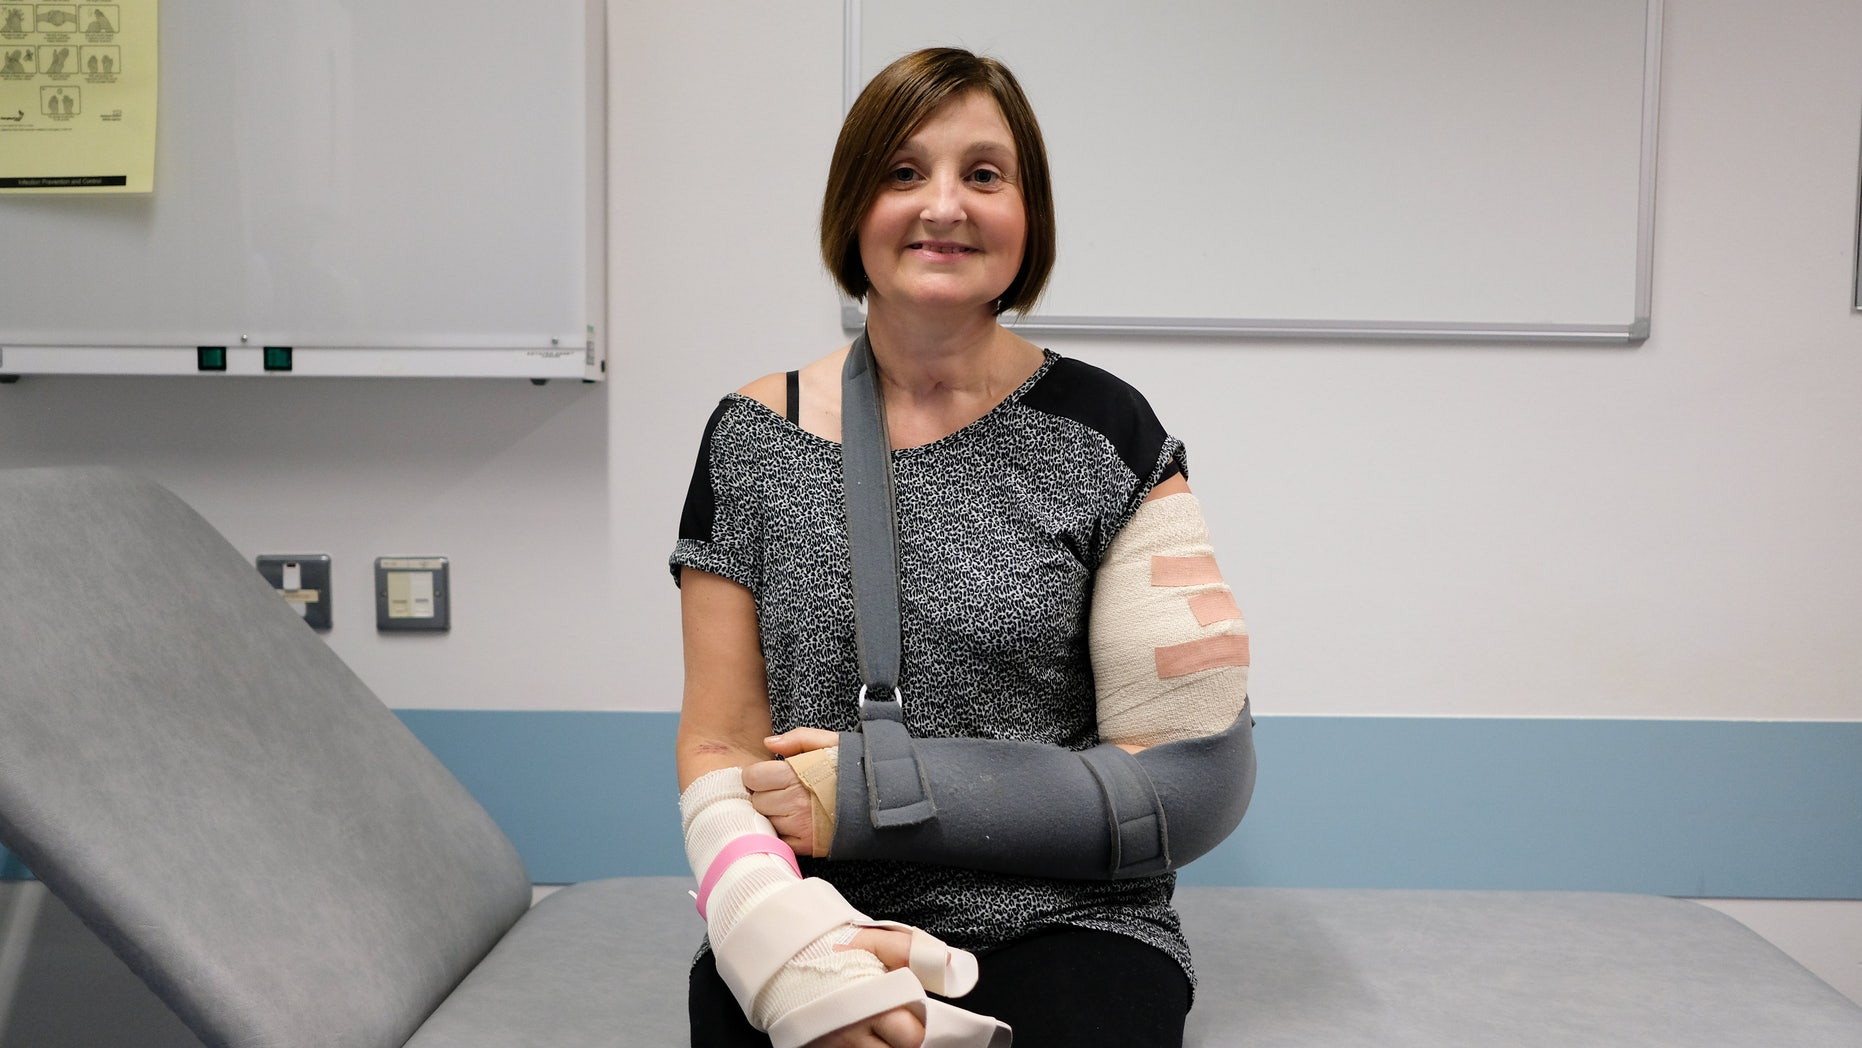 Tania Jackson of Hull after her double hand transplant pictured at Leeds General Hospital.